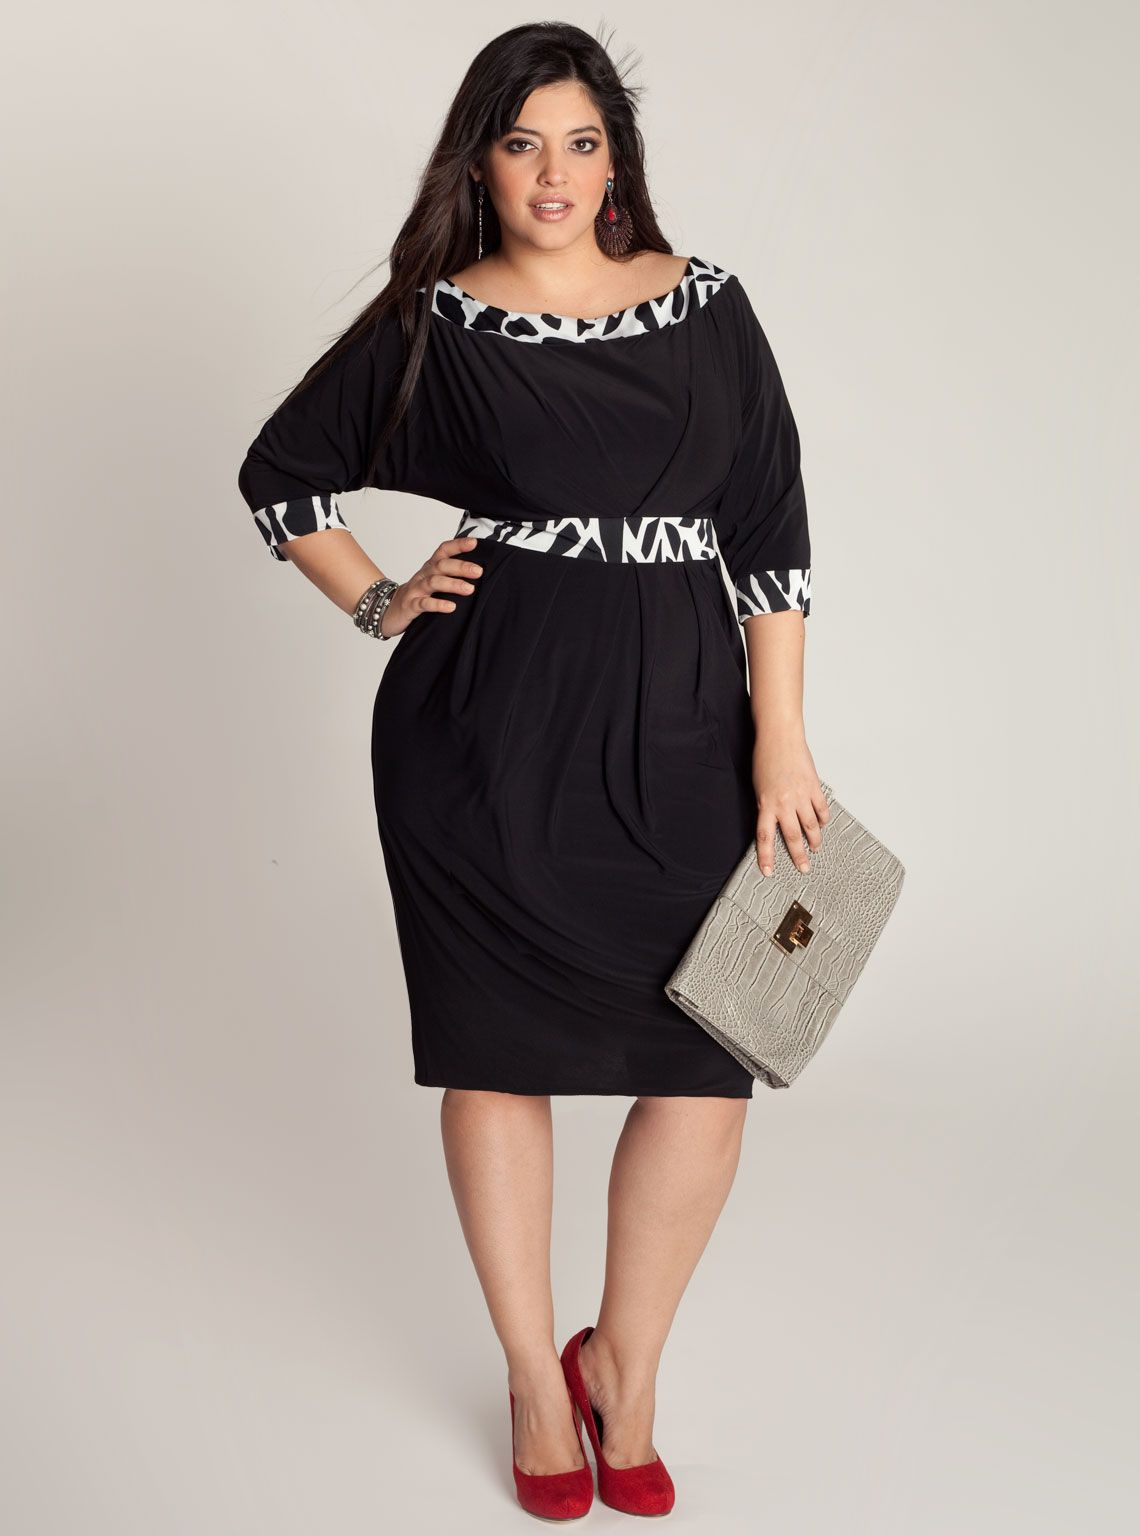 Plus Size Office Wear Google Search